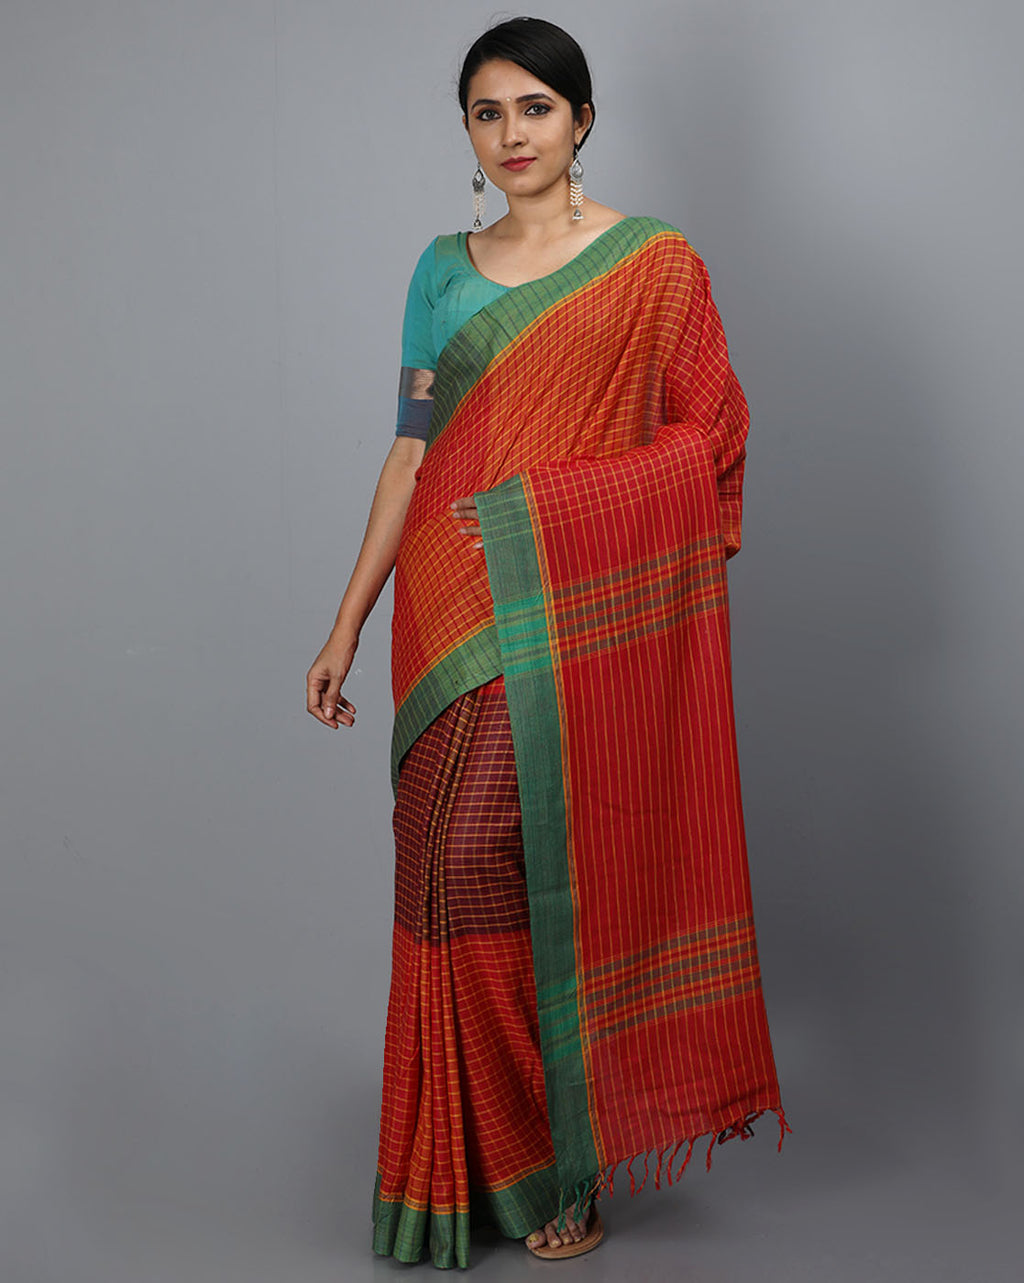 Bihar Gamcha Cotton Saree - Red and Yellow Checks